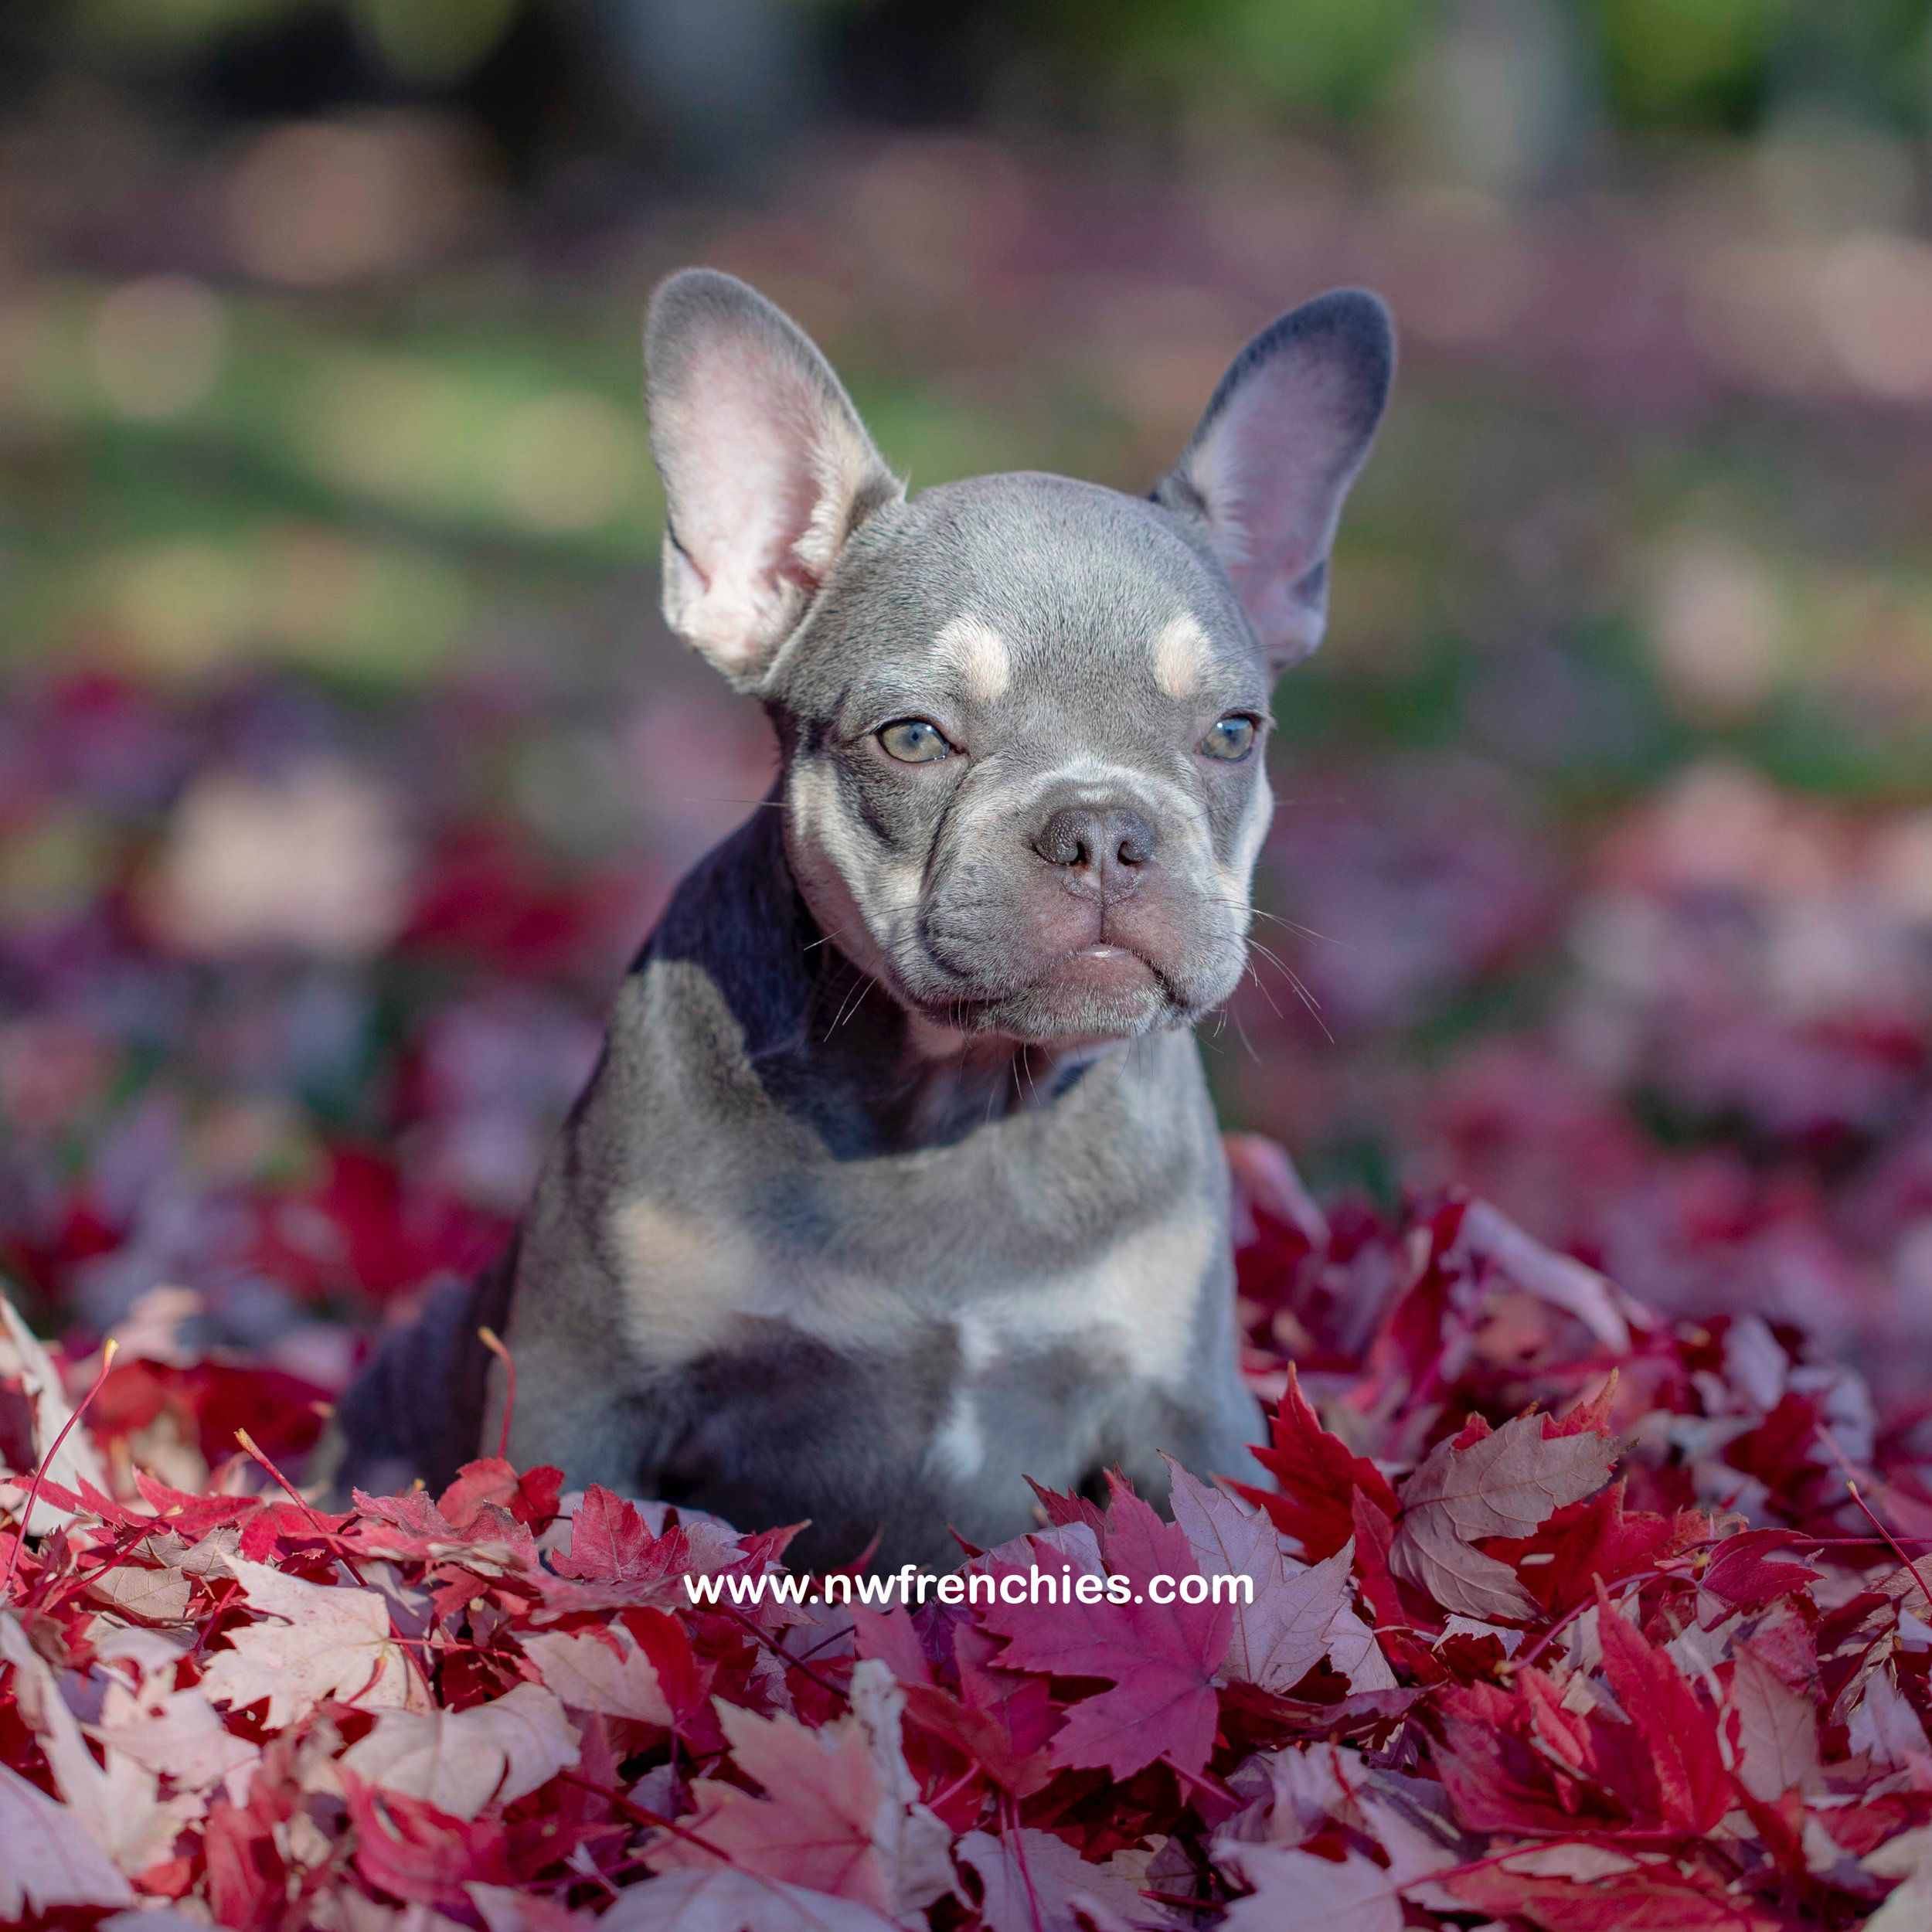 Reserved Akc Lilac French Bulldog Puppies For Sale Bulldog